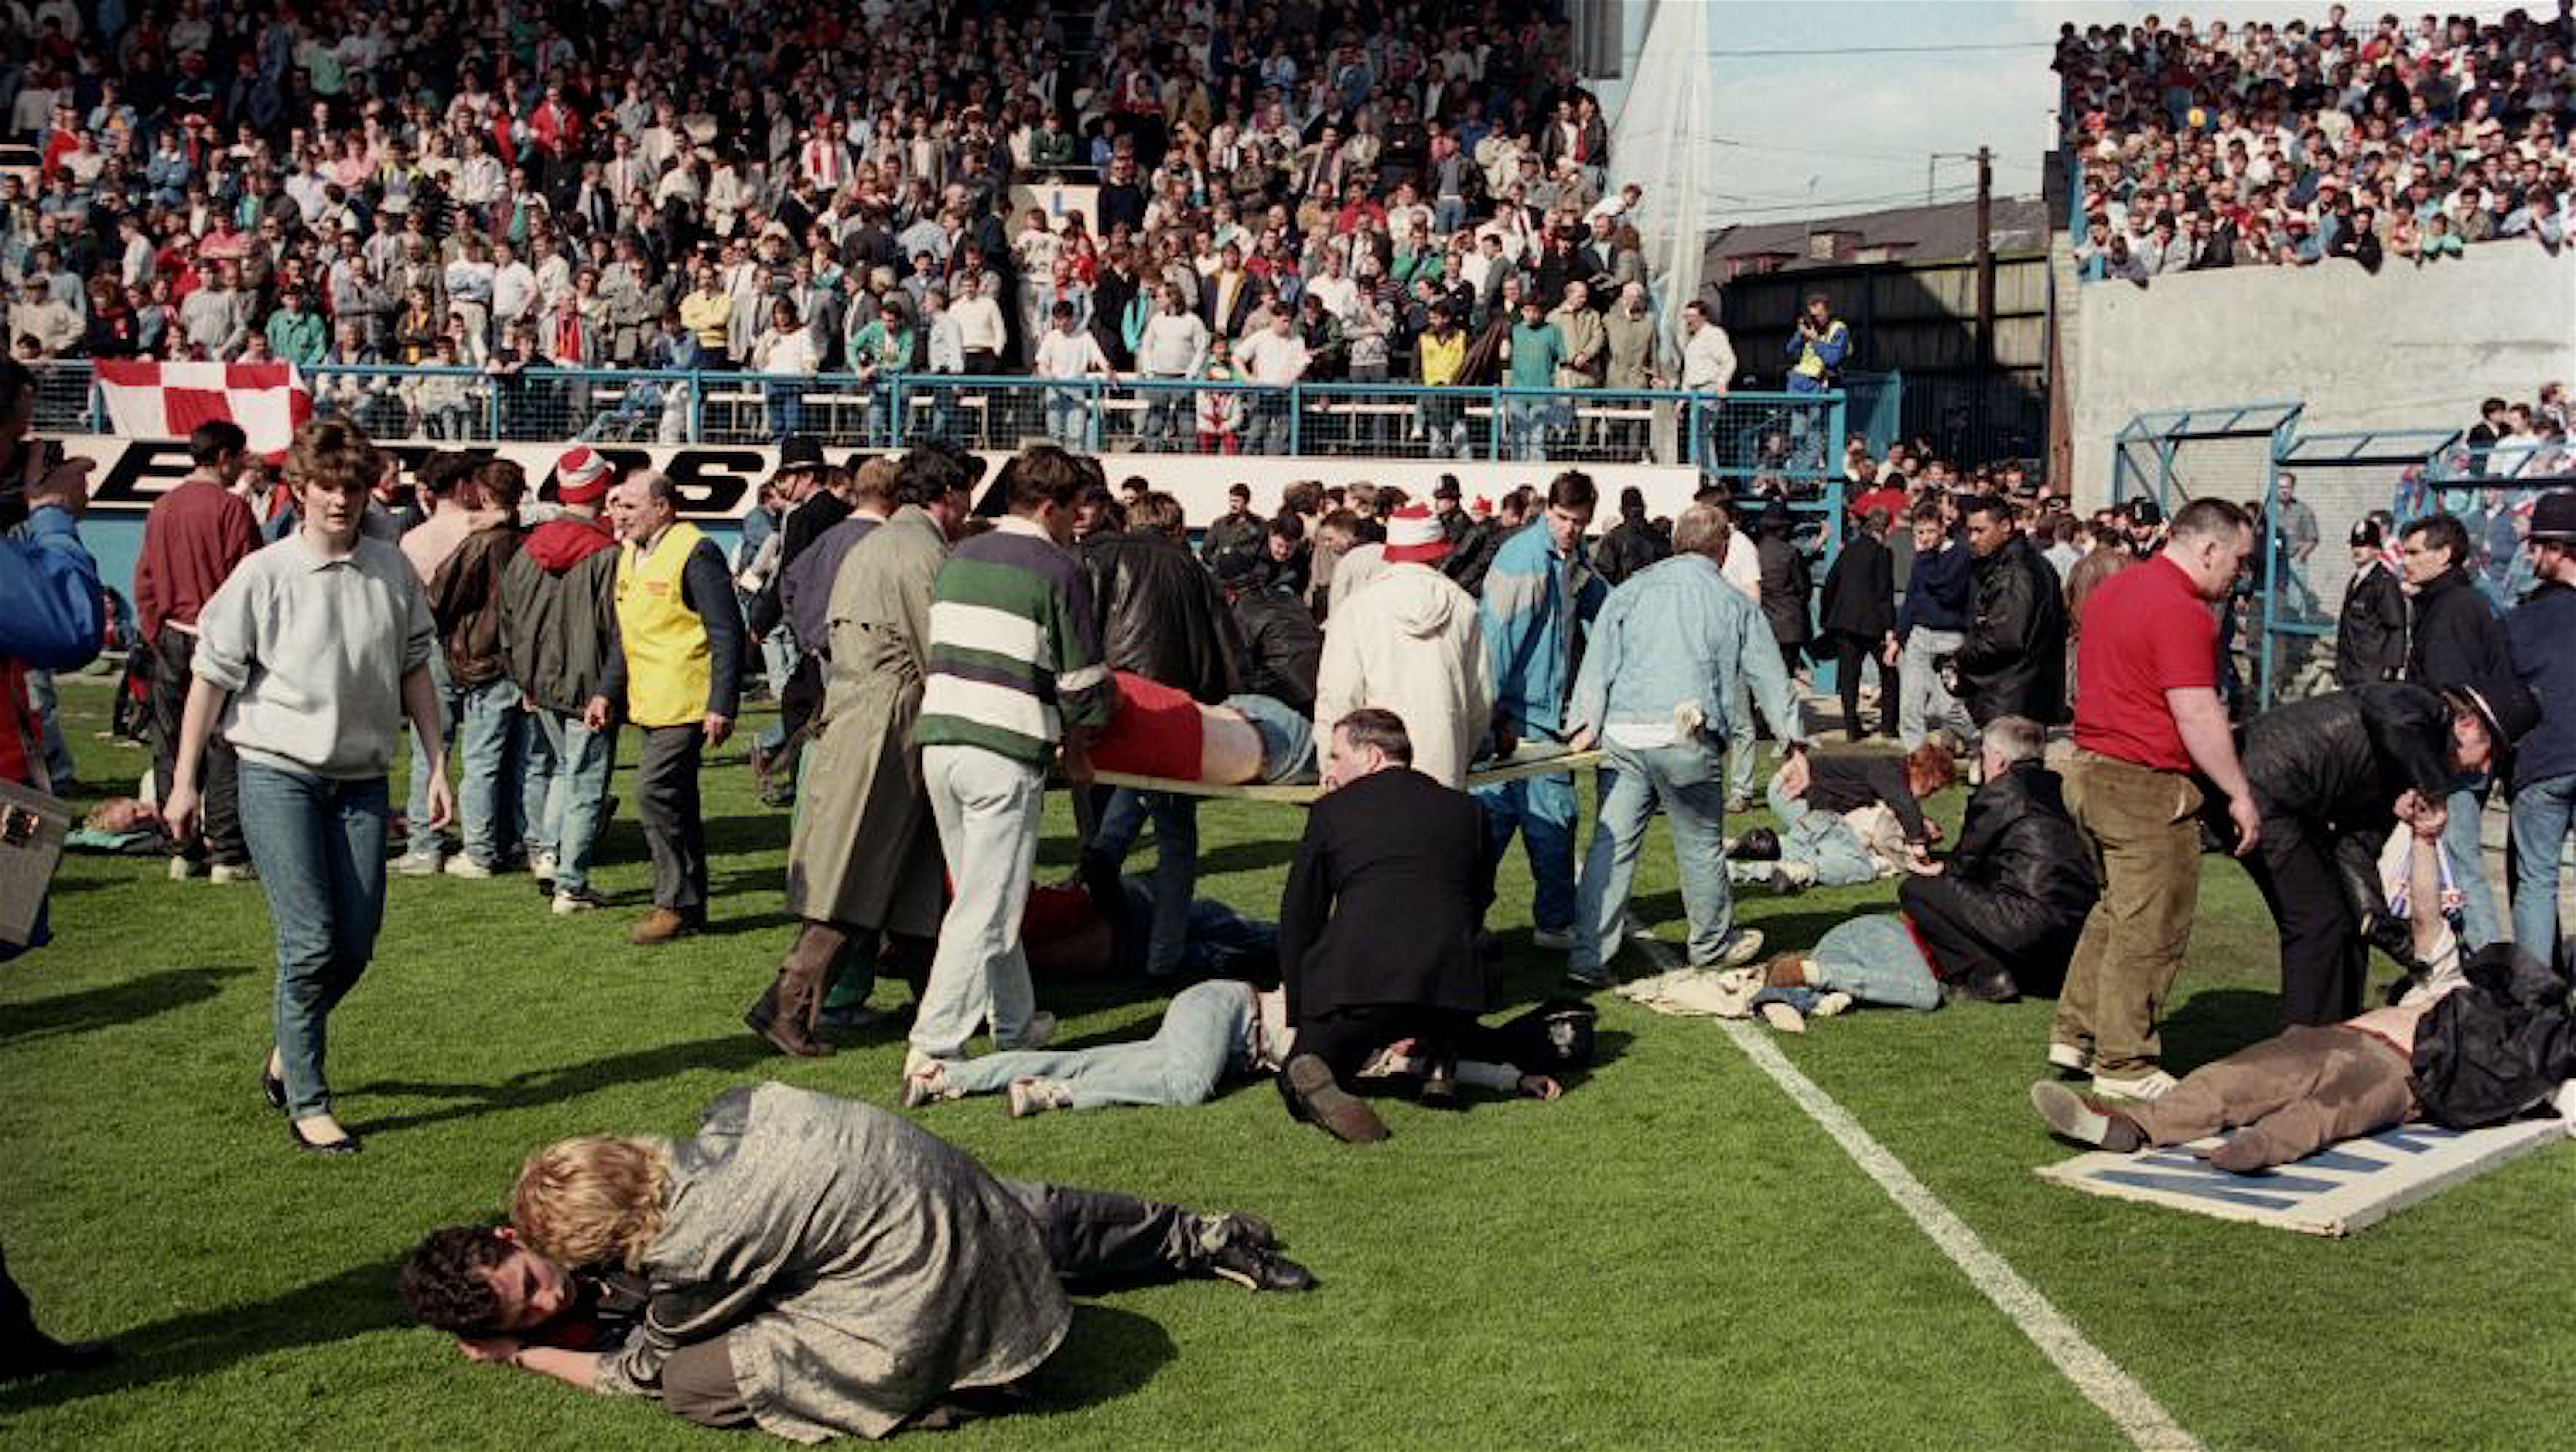 HILLSBOROUGH TRAGEDY. LIVERPOOL SUPPORTERS ARE HELPED AFTER BEING CRUSHED AGAINST THE SAFETY RAILINGS. Z4